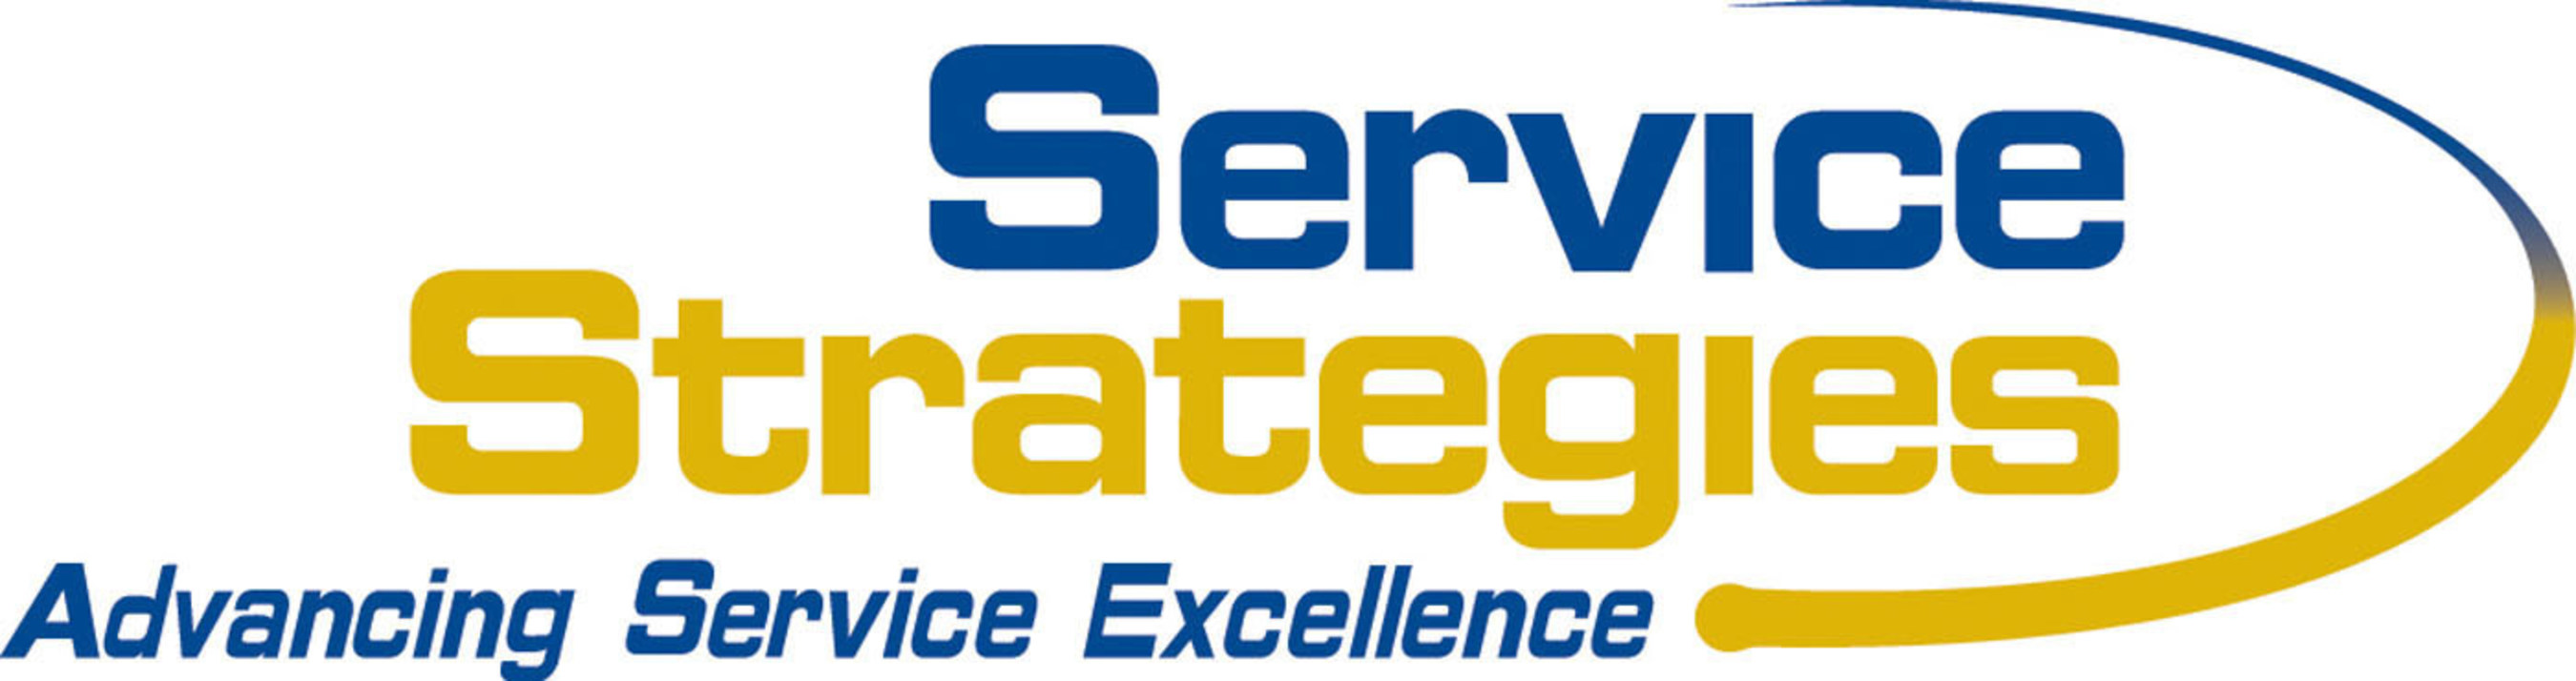 Career Certification Courses Help Service Professionals Deliver